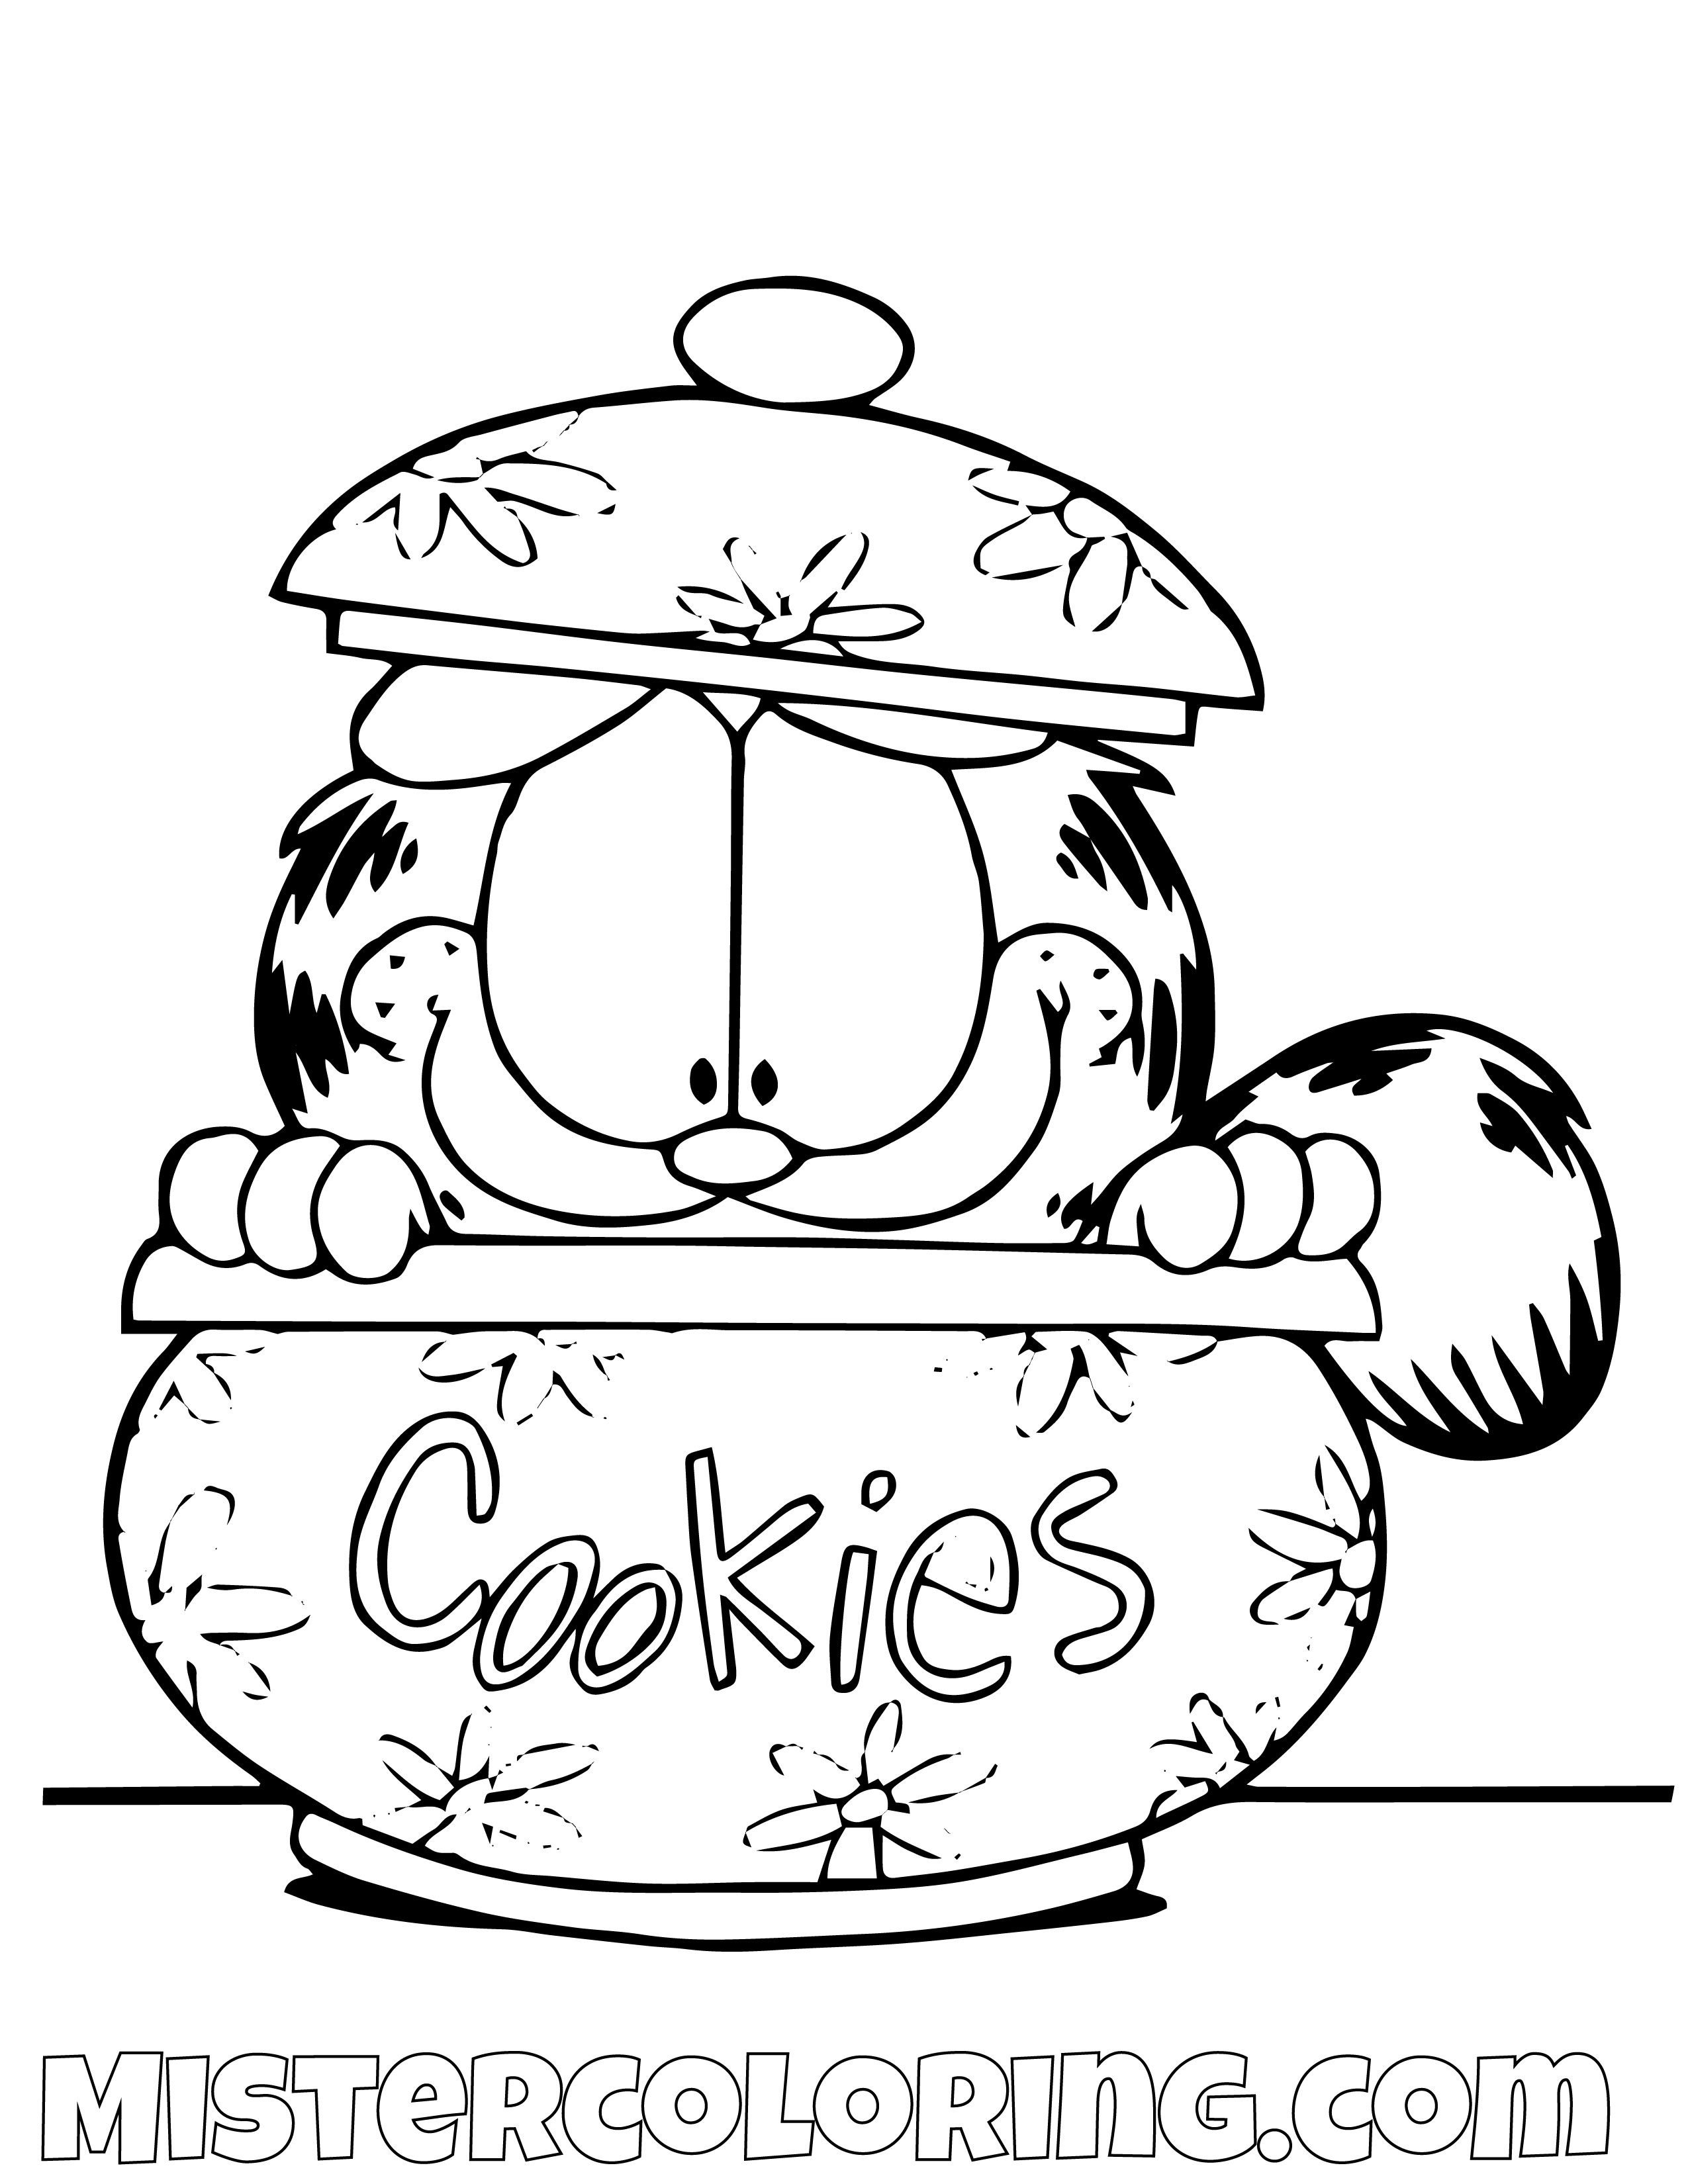 Garfield Coloring Pages For Kids Https Mistercoloring Com Garfield Coloring Pages Pirate Coloring Pages Butterfly Coloring Page Cow Coloring Pages